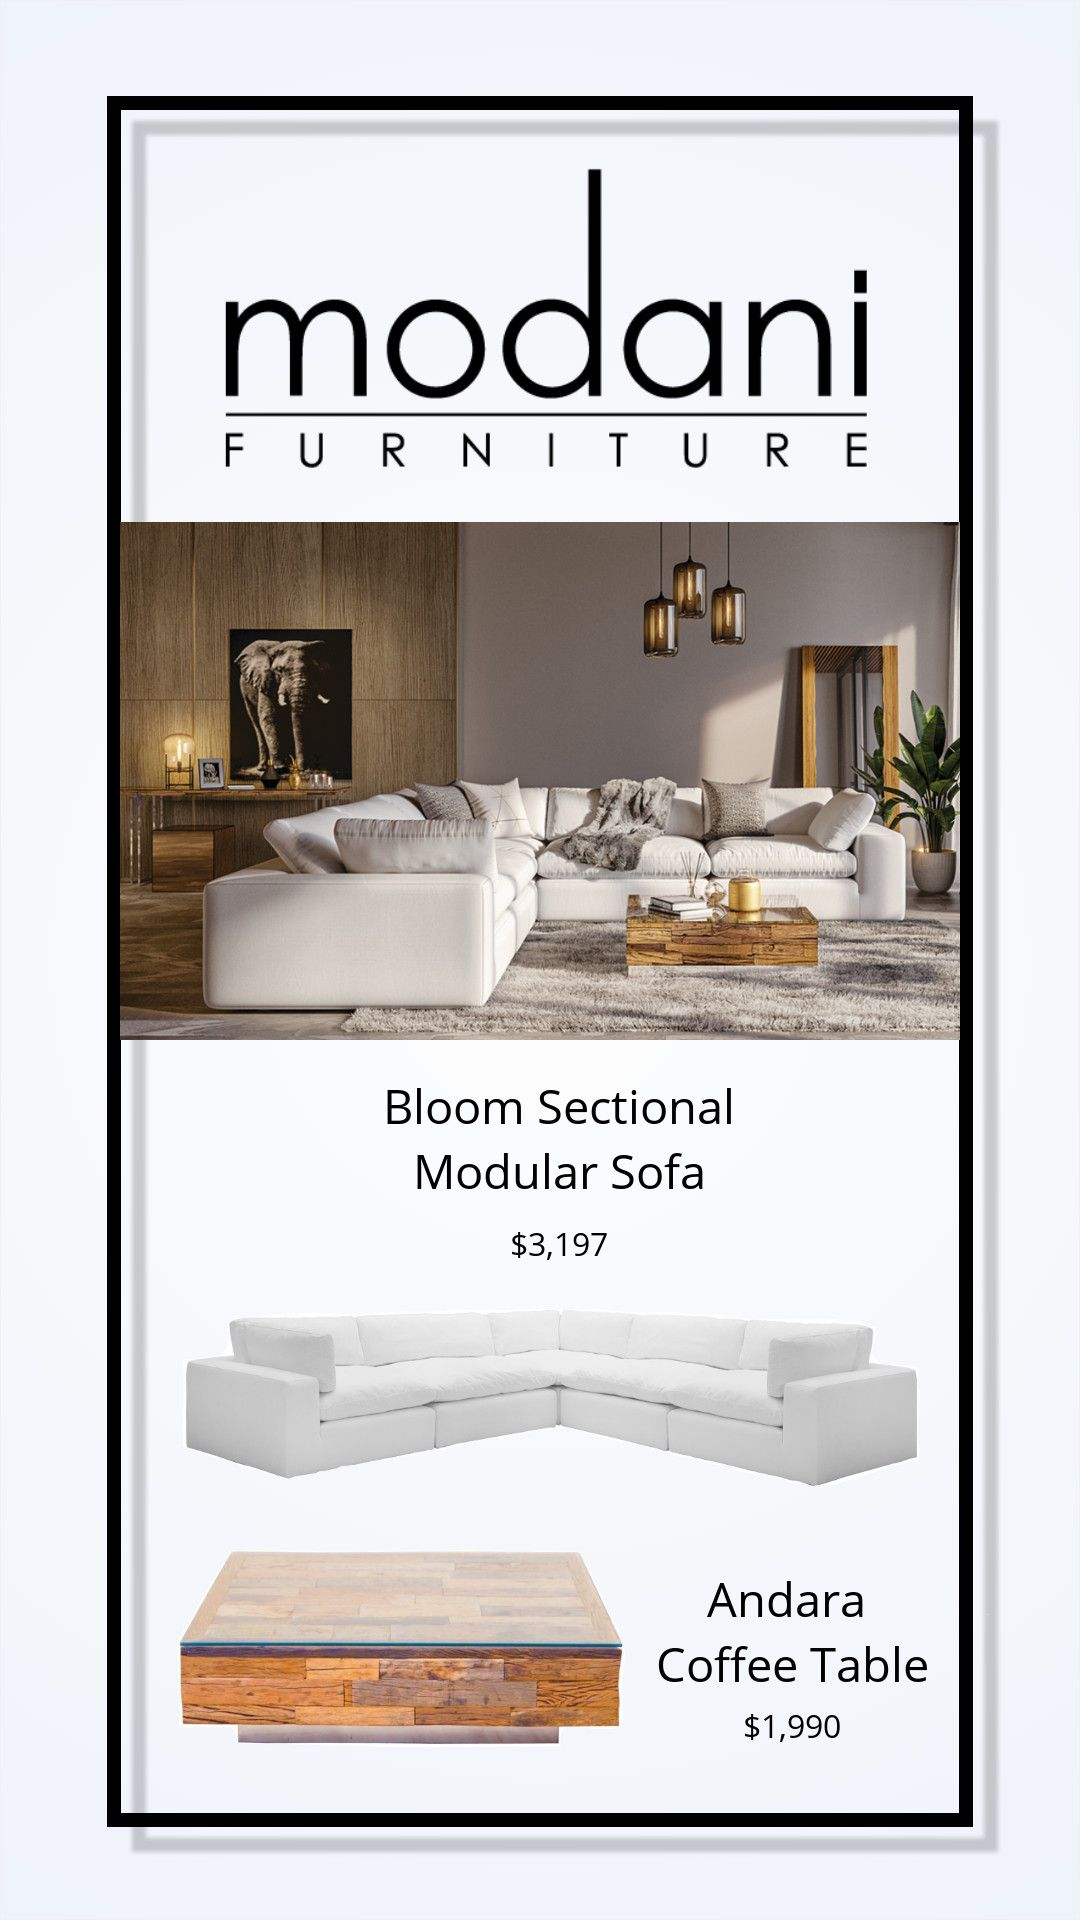 Bloom Sectional Modular Sofa White Modular Sofa Comfy Living Room Furniture Blue Dining Room Chairs [ 1920 x 1080 Pixel ]